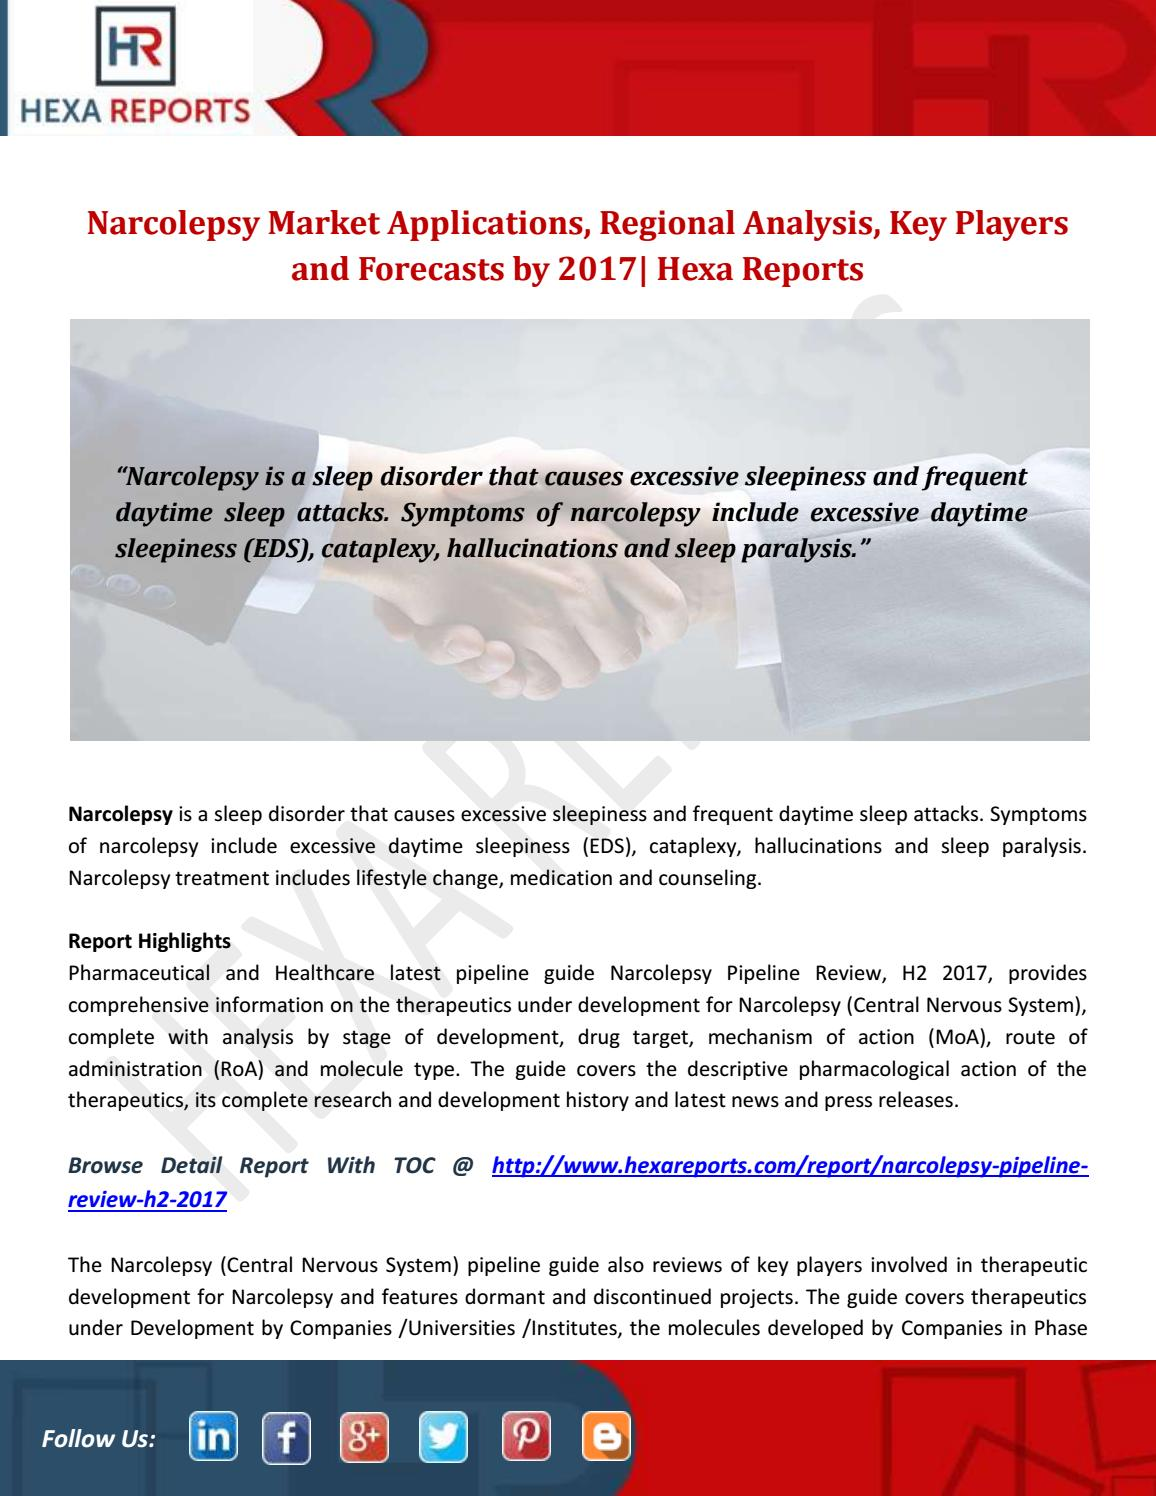 Narcolepsy market applications, regional analysis, key